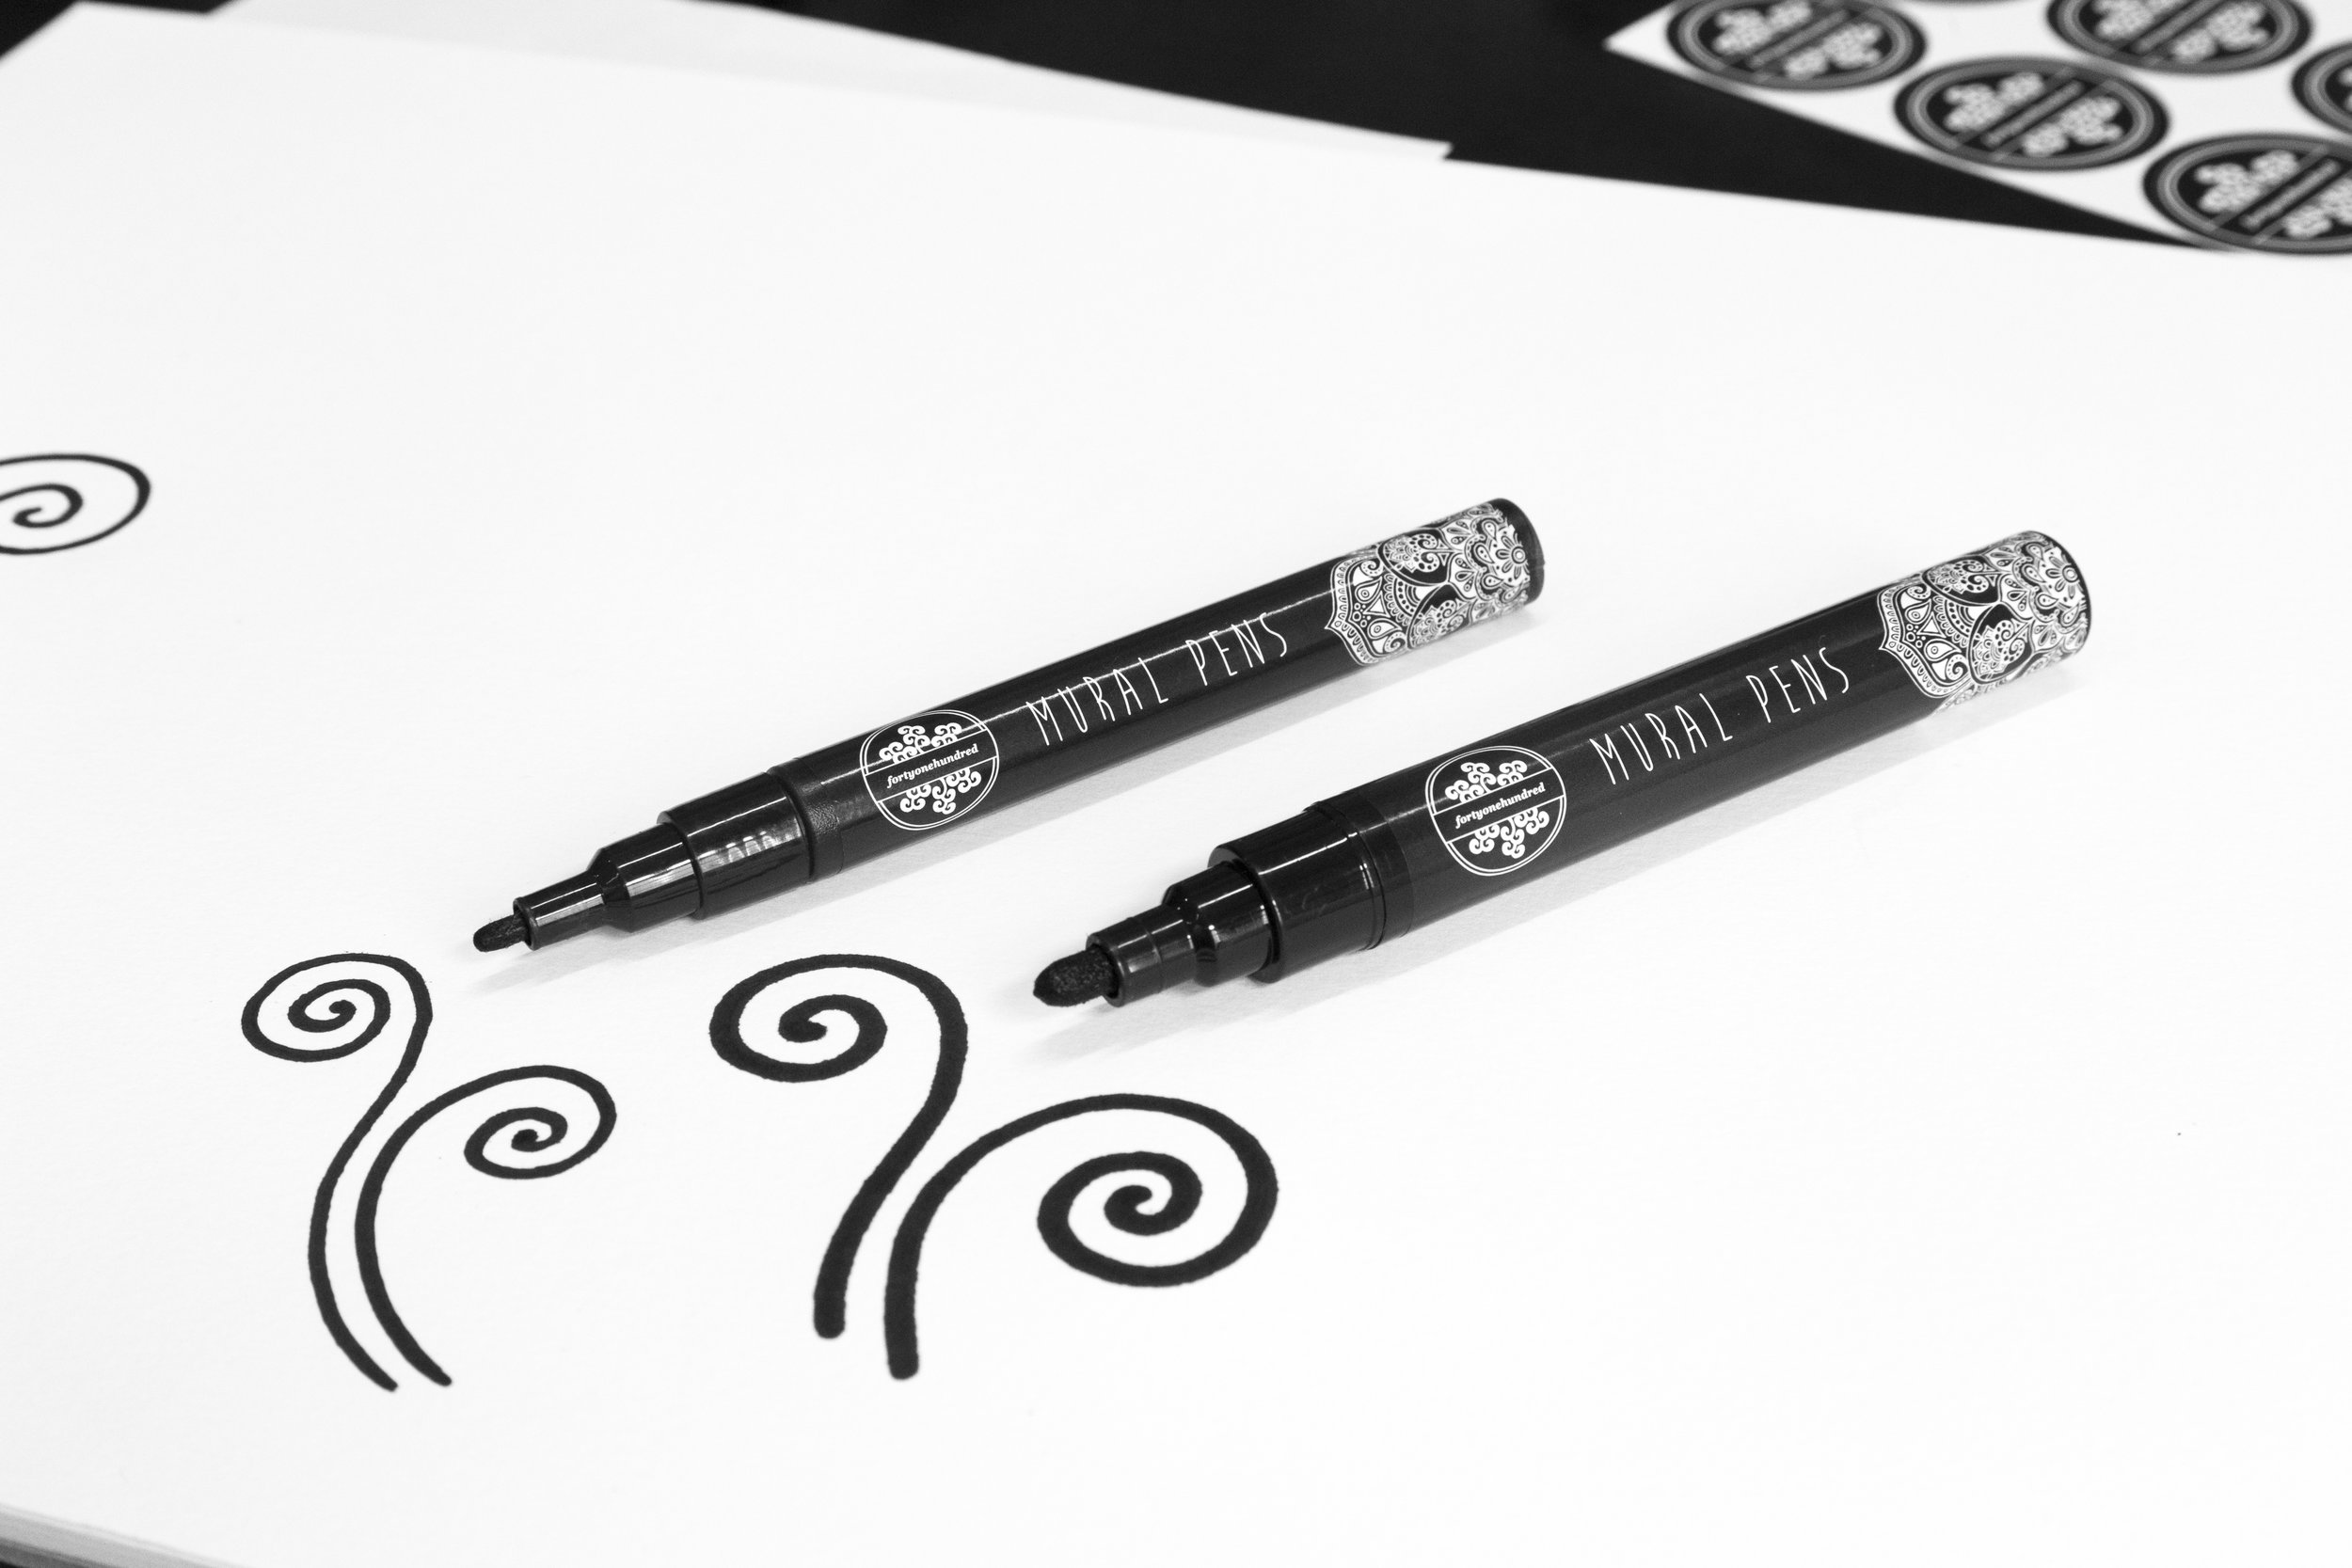 Mural Pens by fortyonehundred